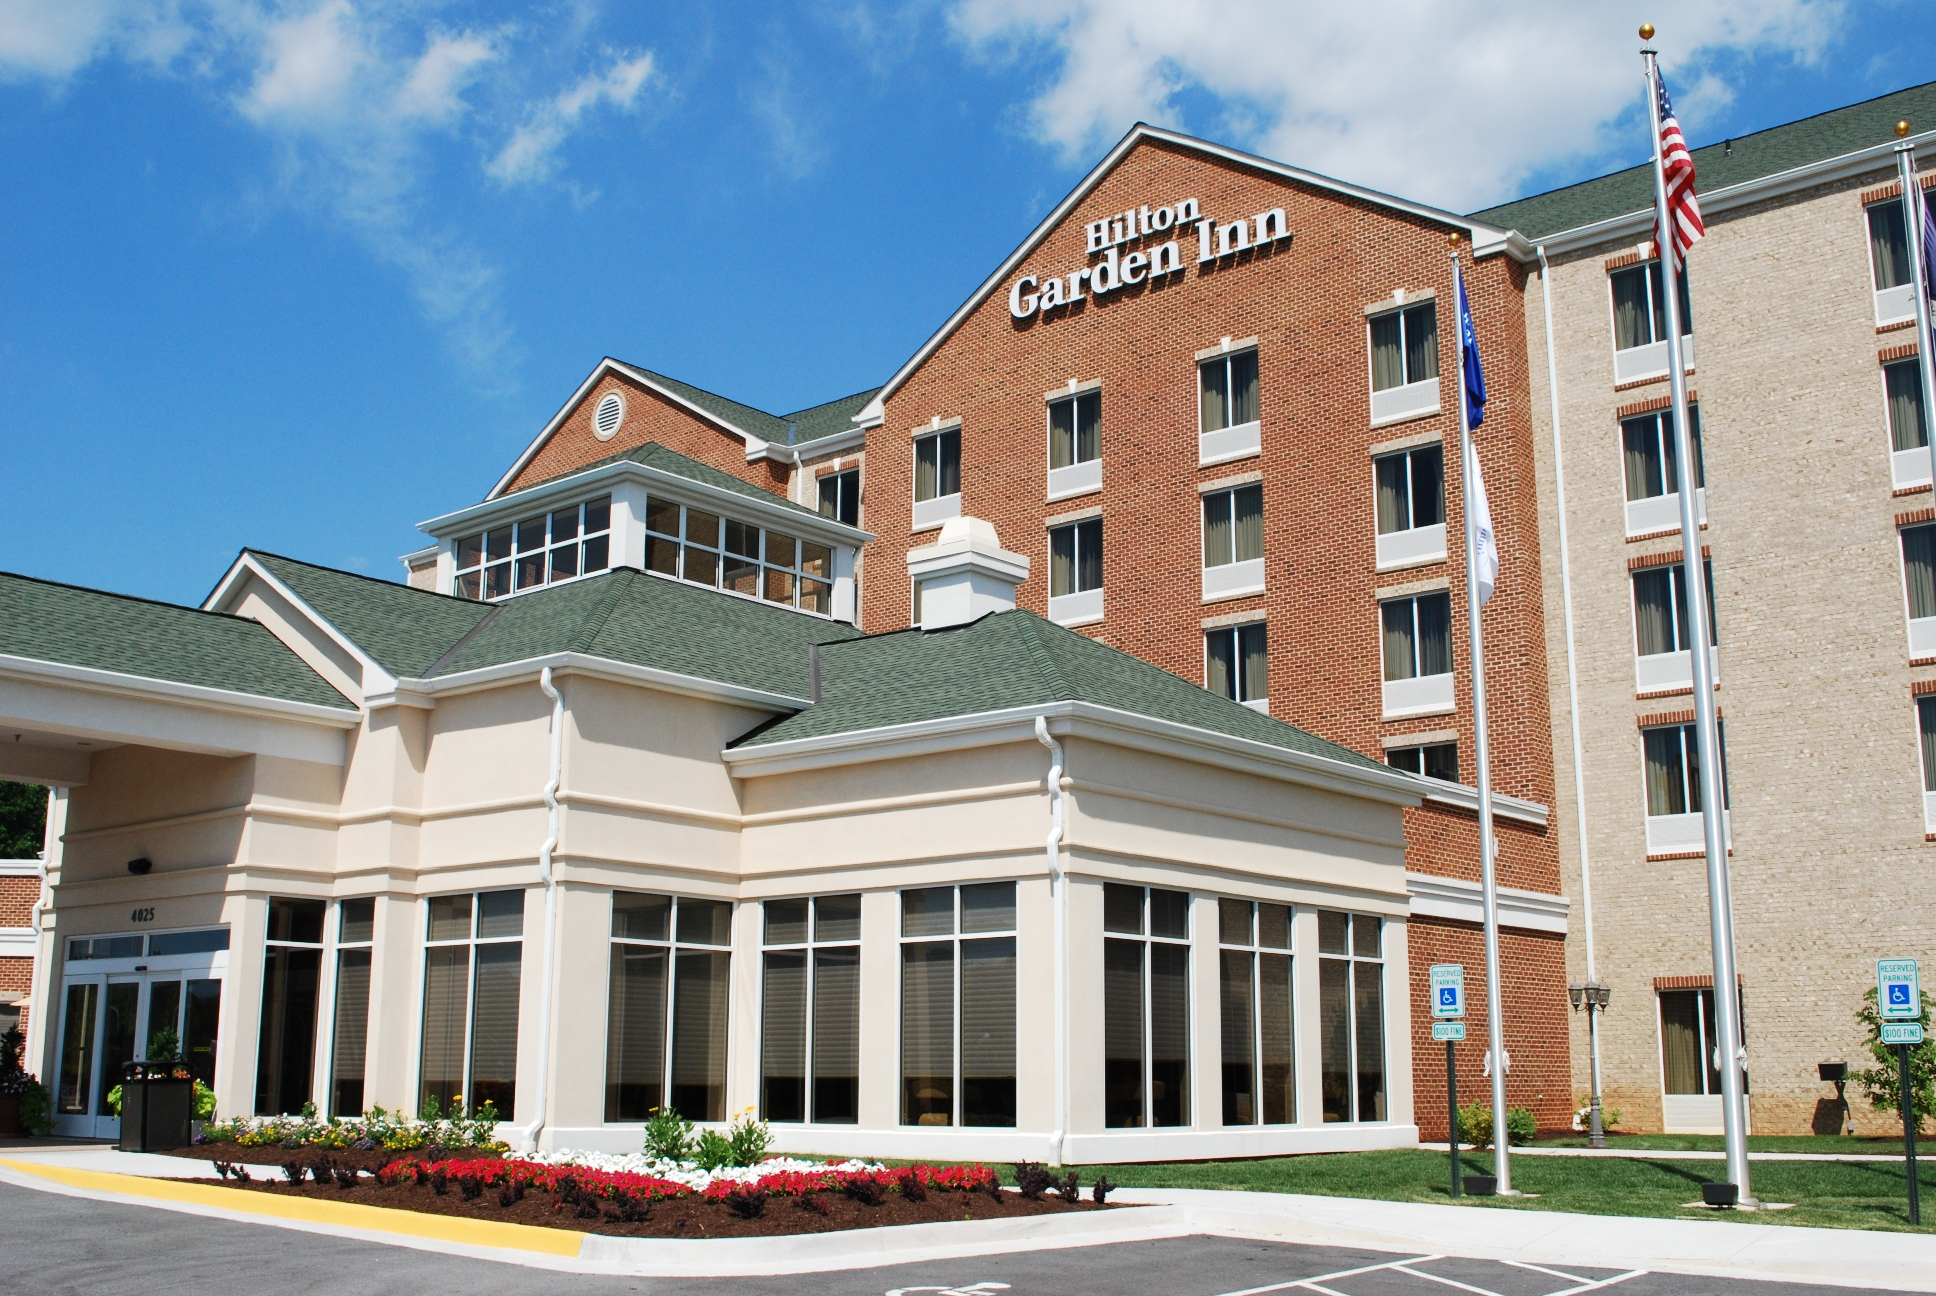 Hilton Garden Inn Is A Full Service Hotel, Complete With Restaurant,  Bar/lounge Area And Approximately 4,000 Square Feet Of Luxurious Meeting  Space For All ...